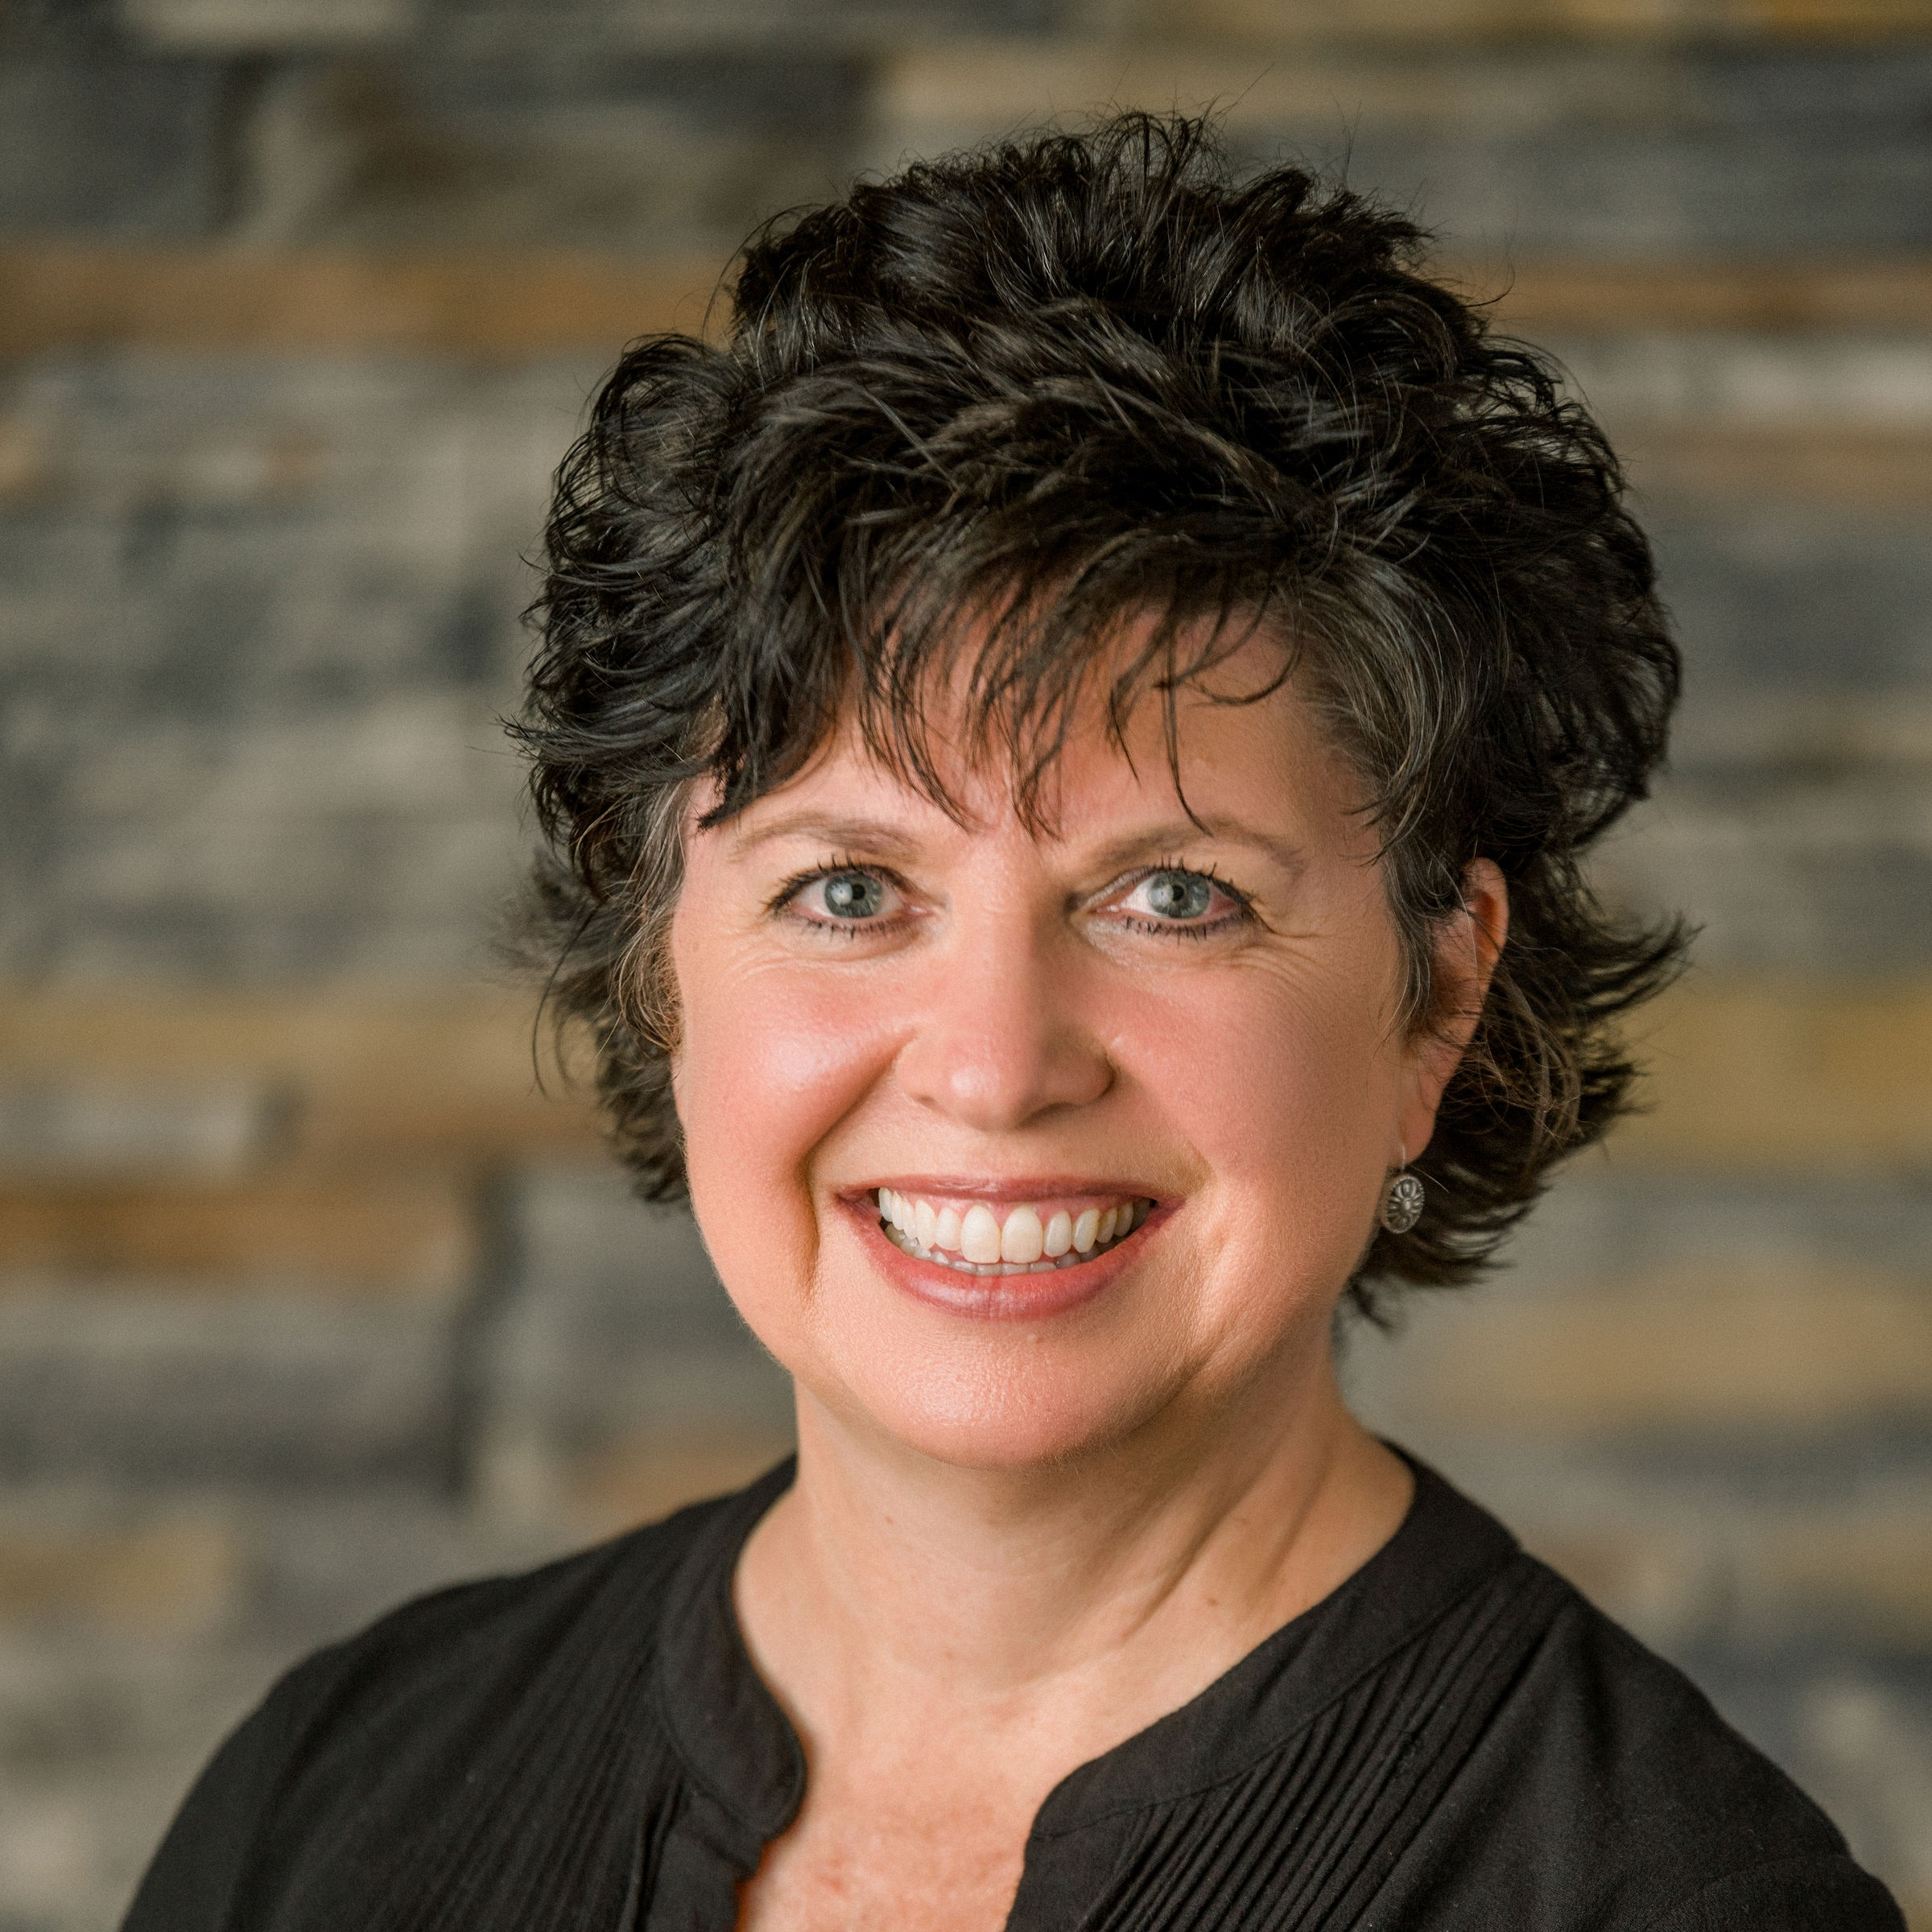 Lisa Q. of Orthodontic Specialty Services